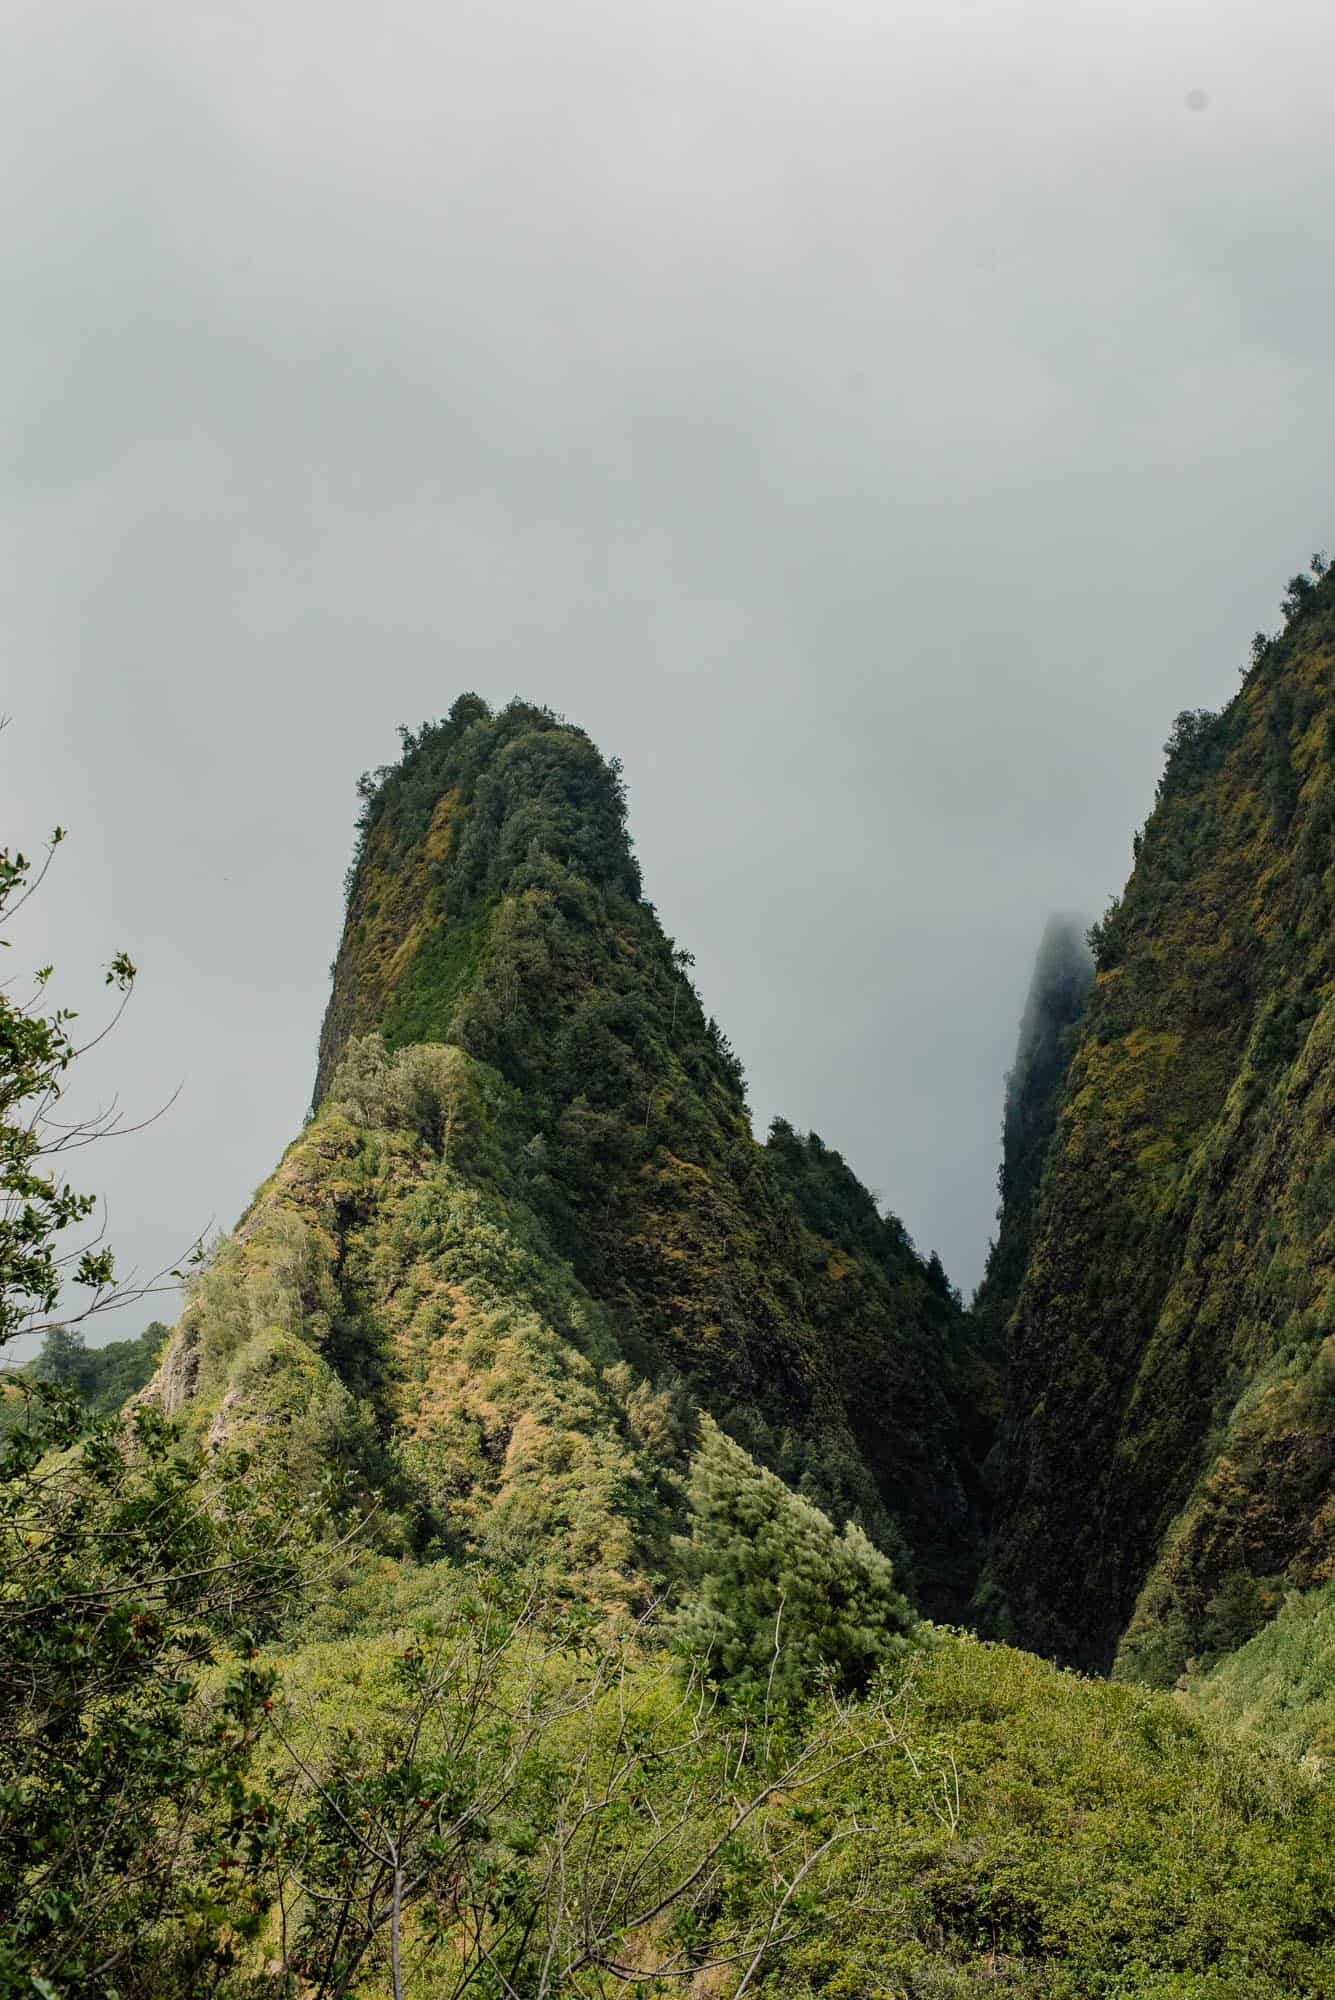 view of the Iao Valley needle on Maui